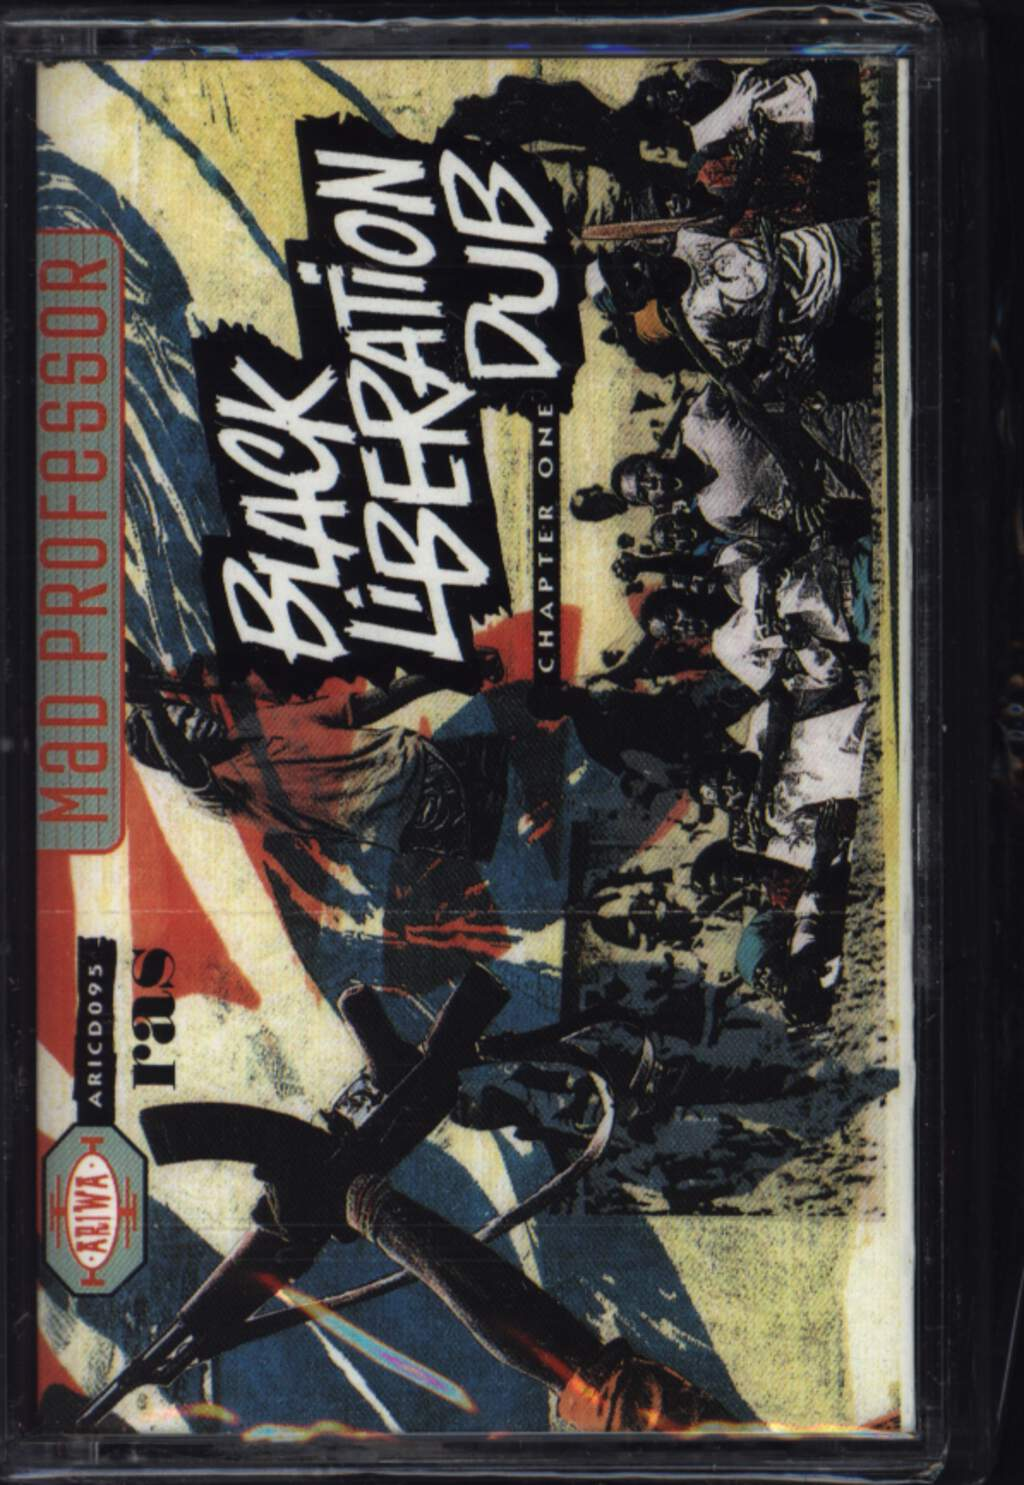 Mad Professor: Black Liberation Dub, Compact Cassette